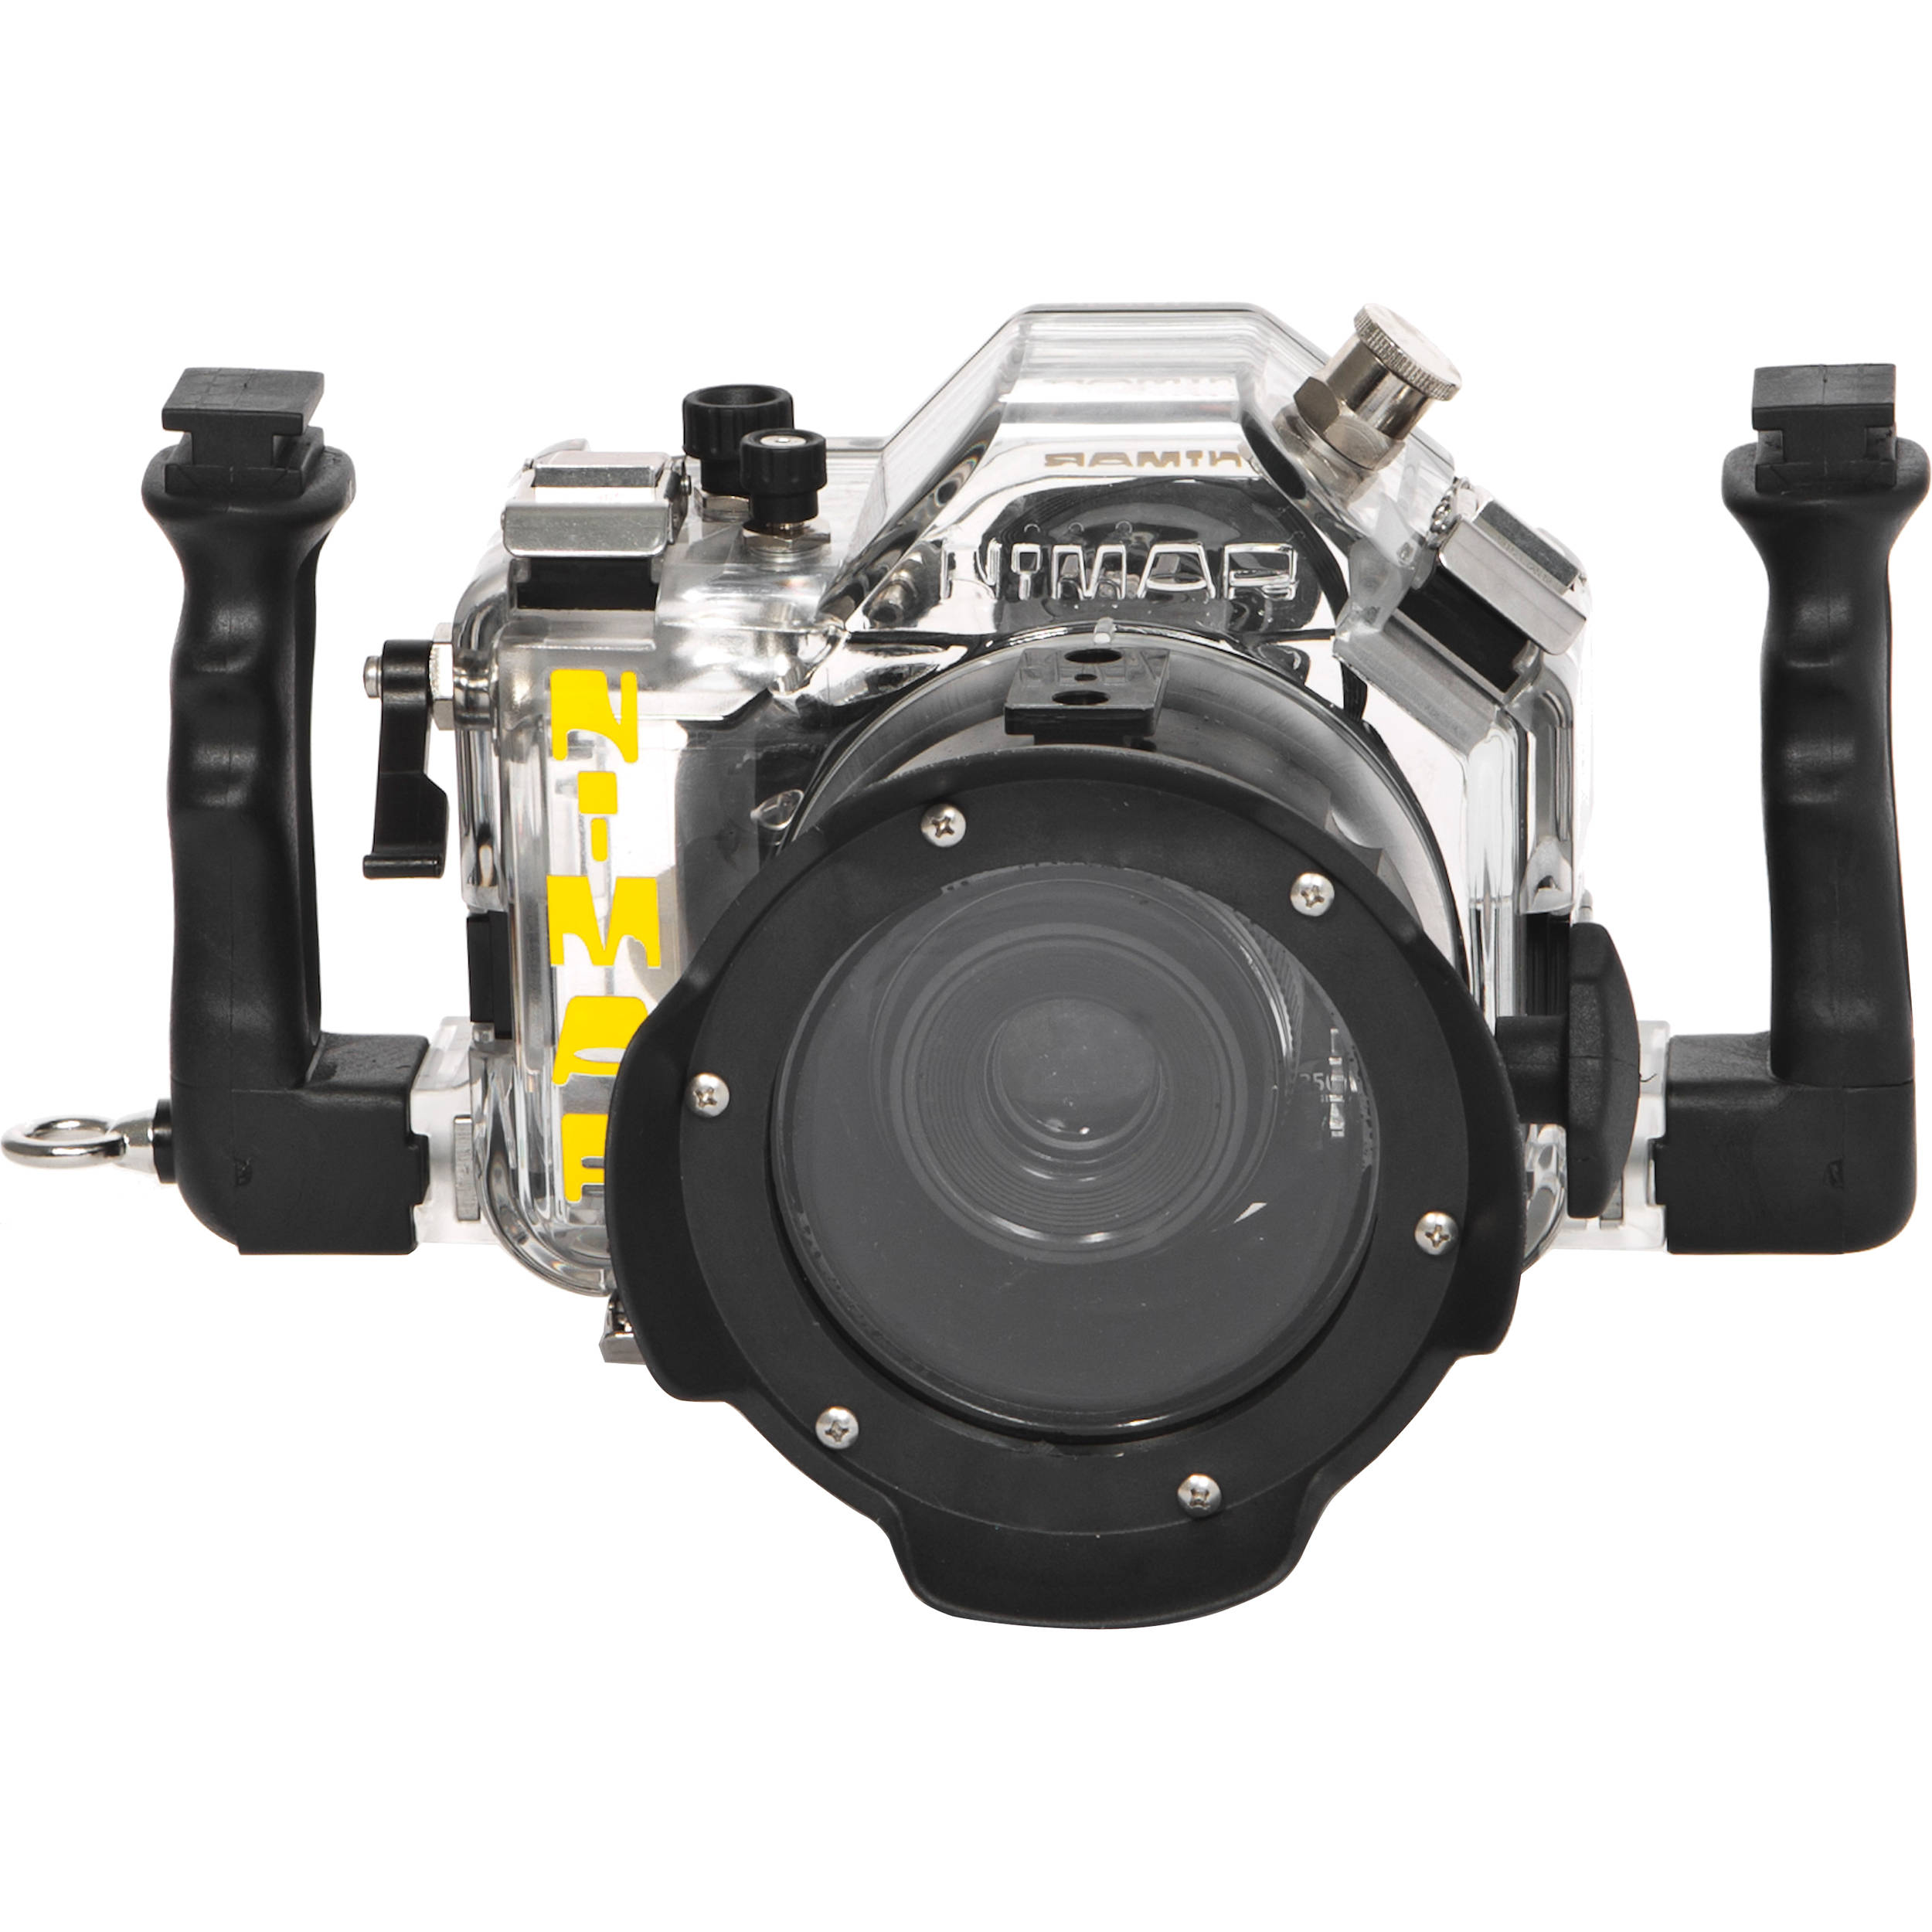 nimar underwater housing for canon eos rebel 300d ni3dc300zmq rh bhphotovideo com Canon Rebel 300D Canon 300Dg